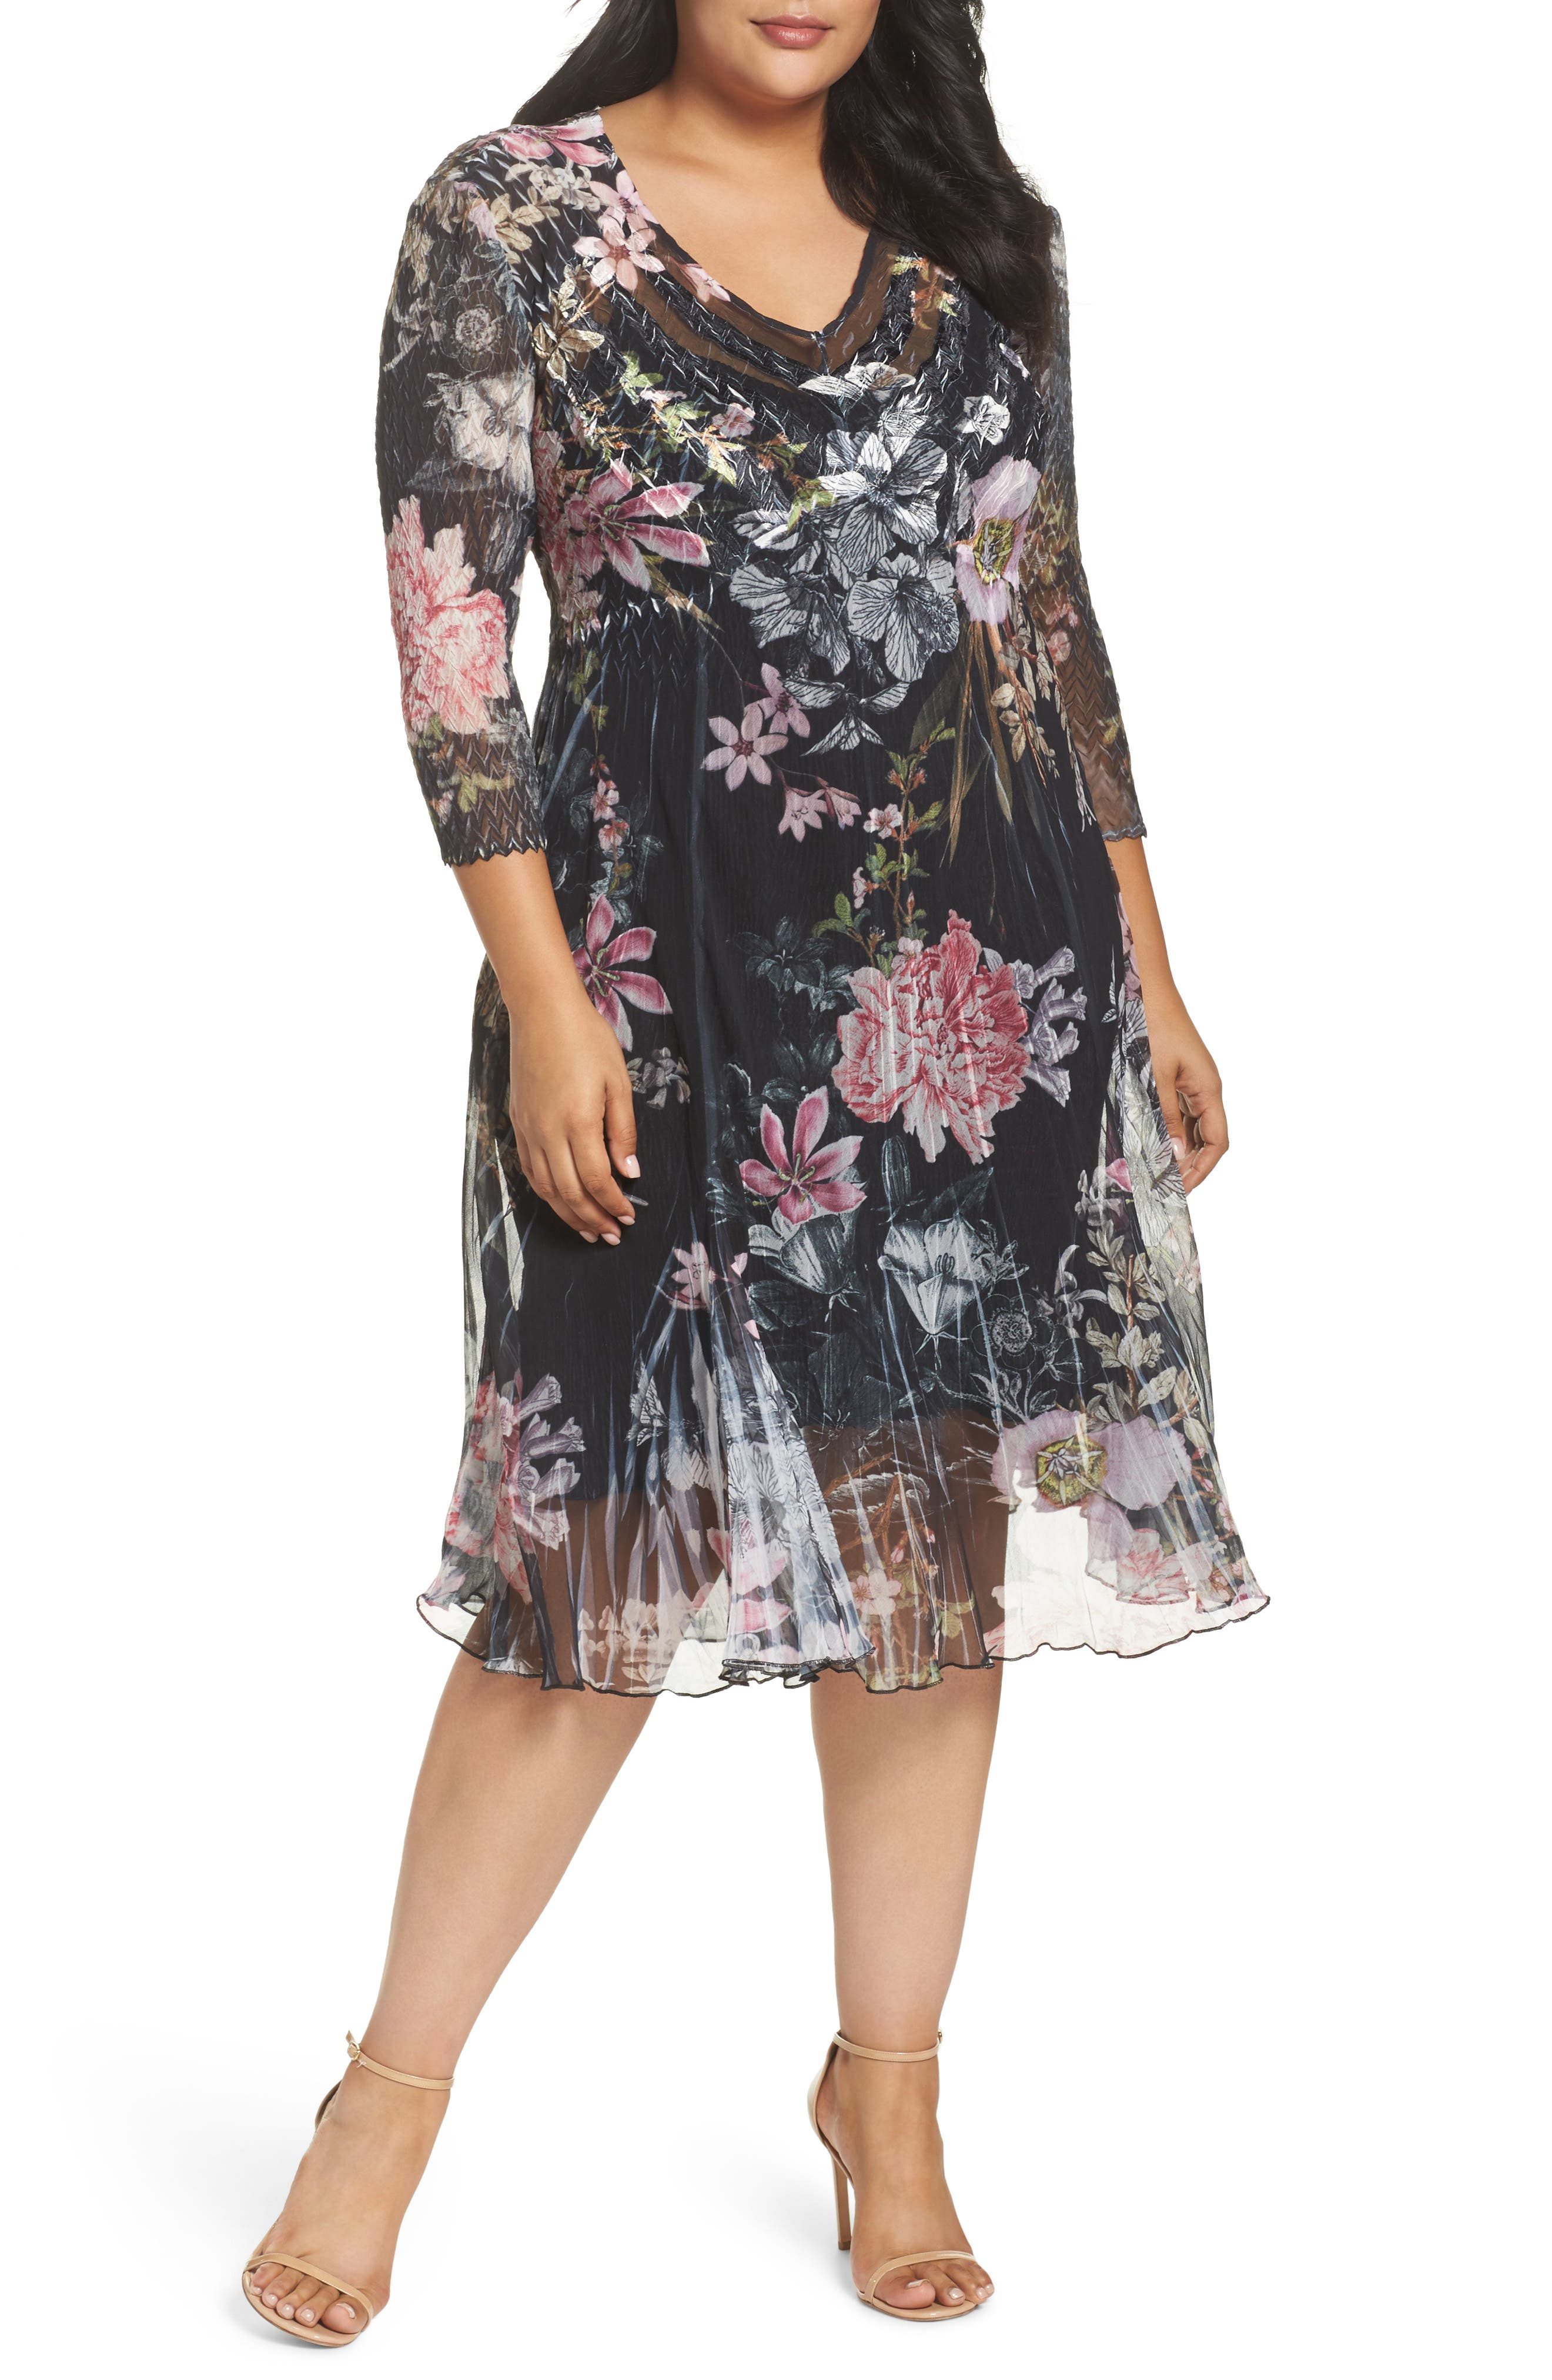 Kamarov Floral Charmeuse & Chiffon Floral A-Line Dress,                         Main,                         color, Moon Flower